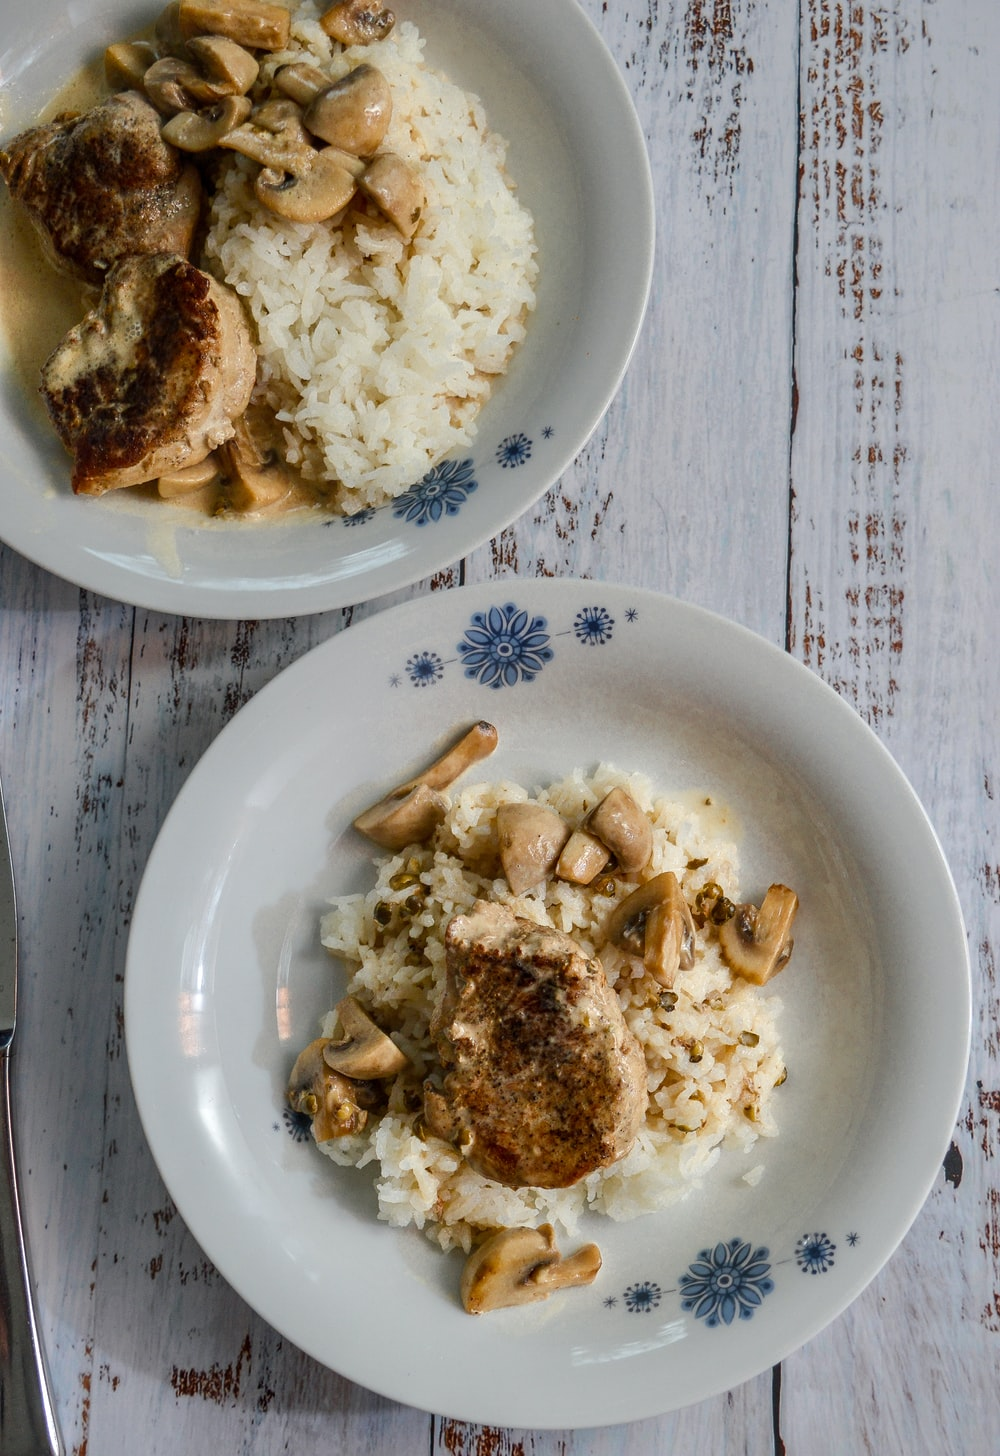 white ceramic plate with rice and fried chicken